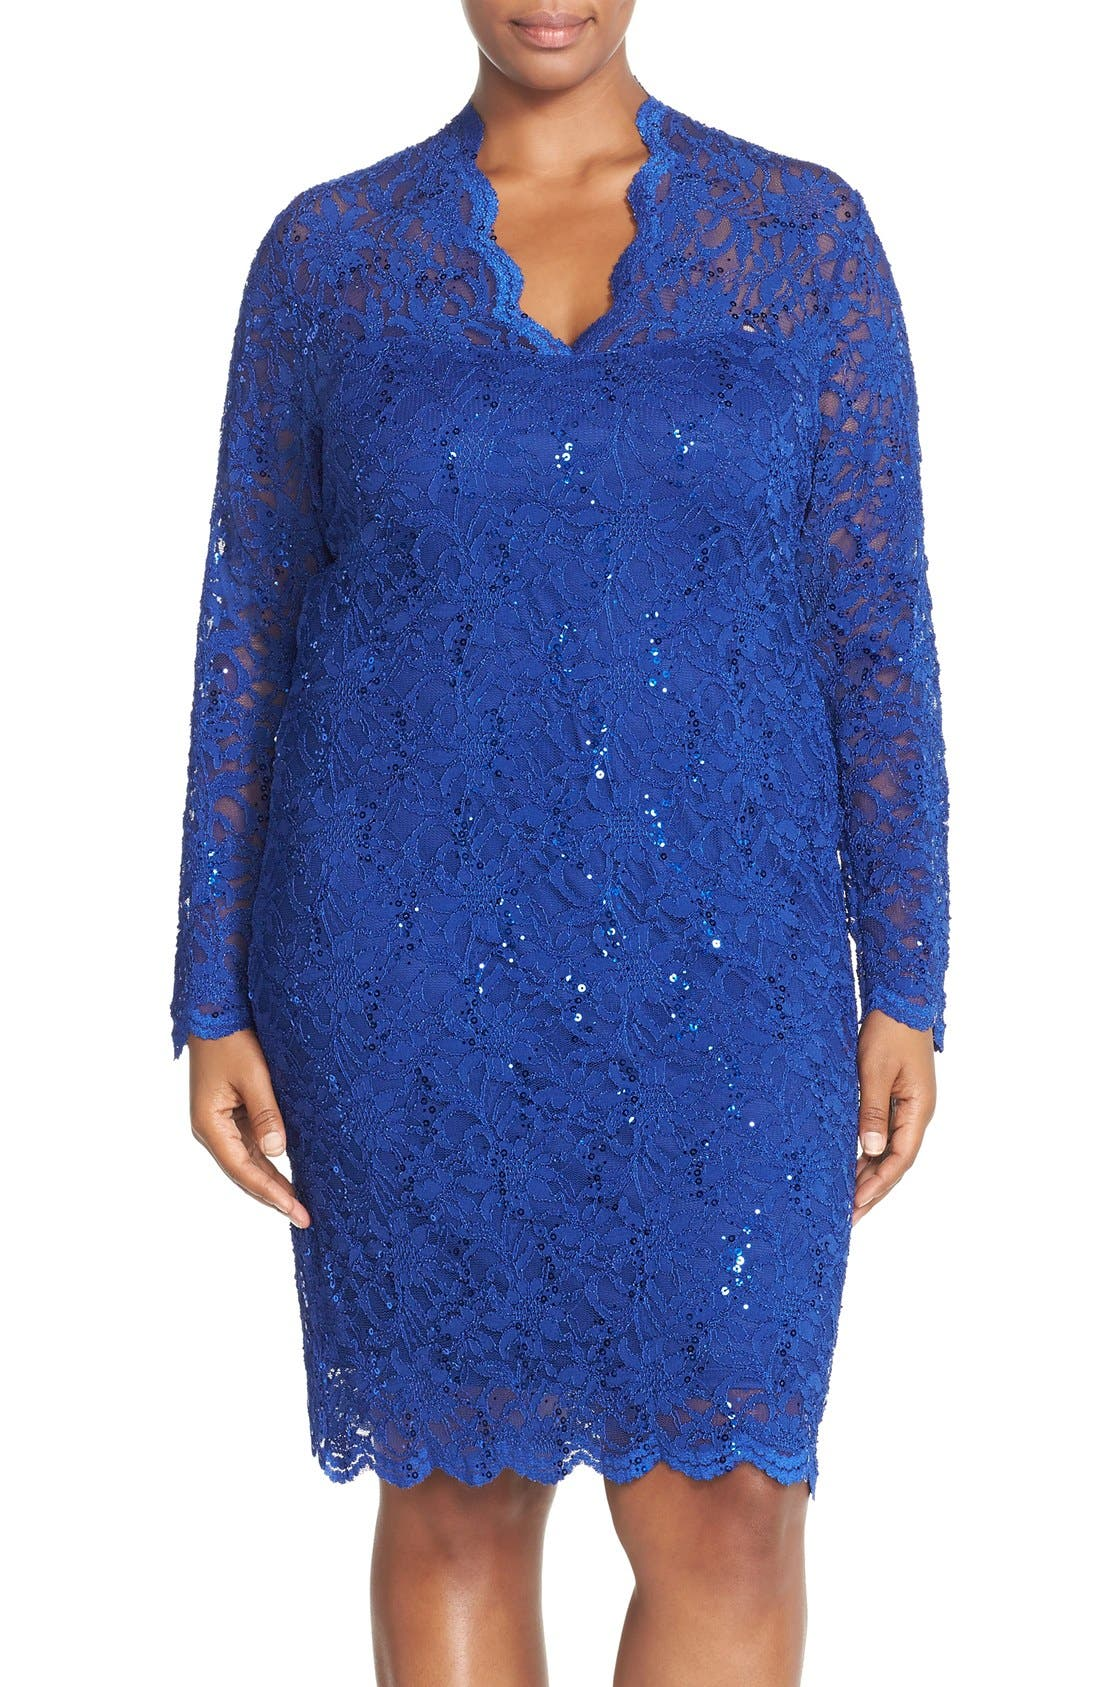 Alternate Image 1 Selected - Marina Sequin Stretch Lace Sheath Dress (Plus Size)